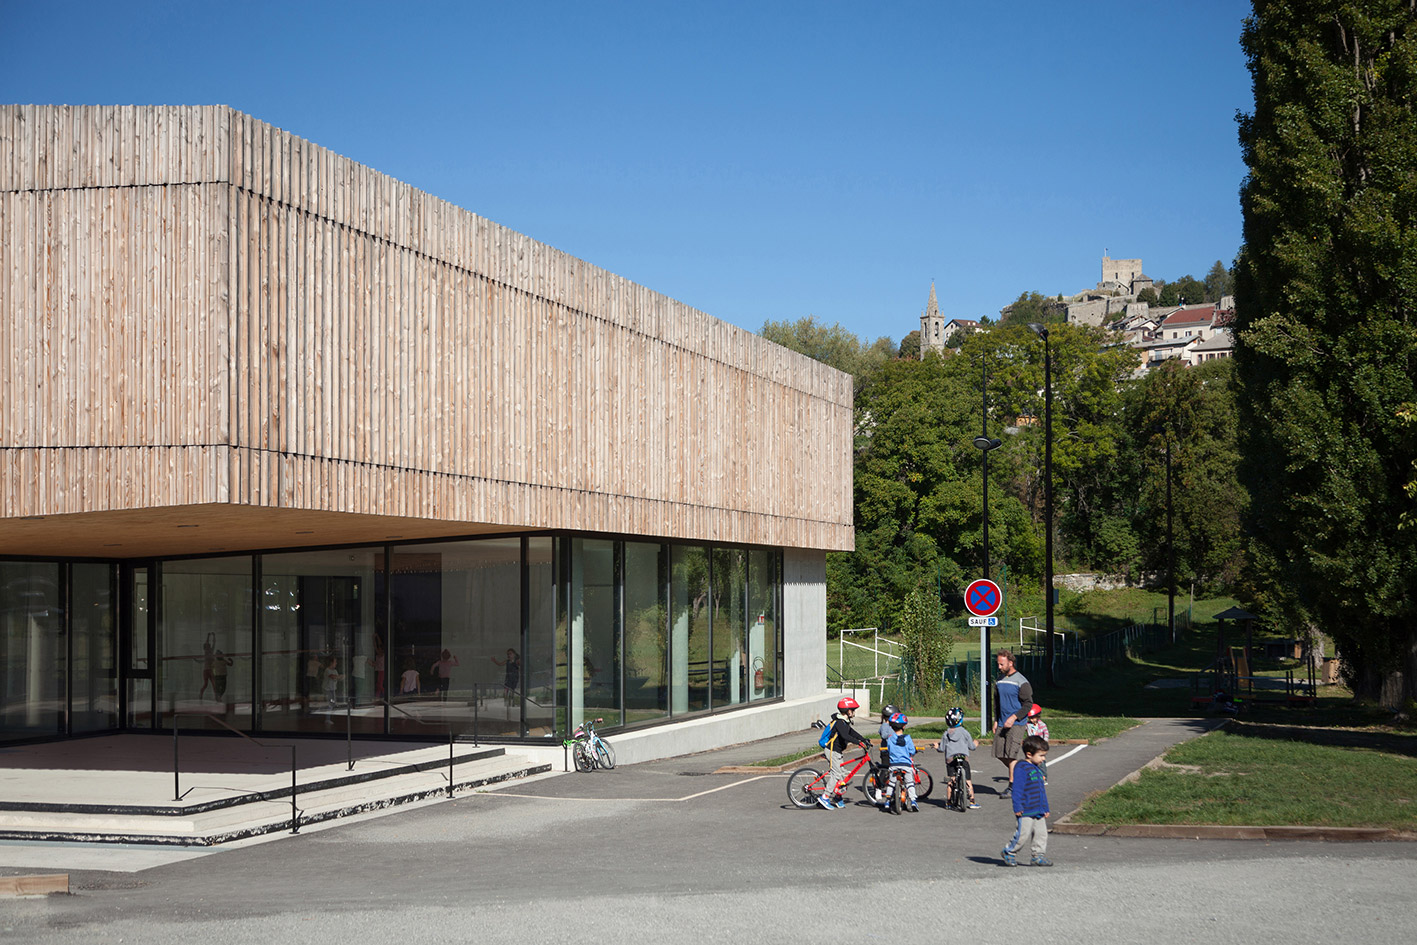 jerome-ricolleau-photographe-architecture-lyon-Composite-grenoble-gymnase-seyne-les-alpes-3